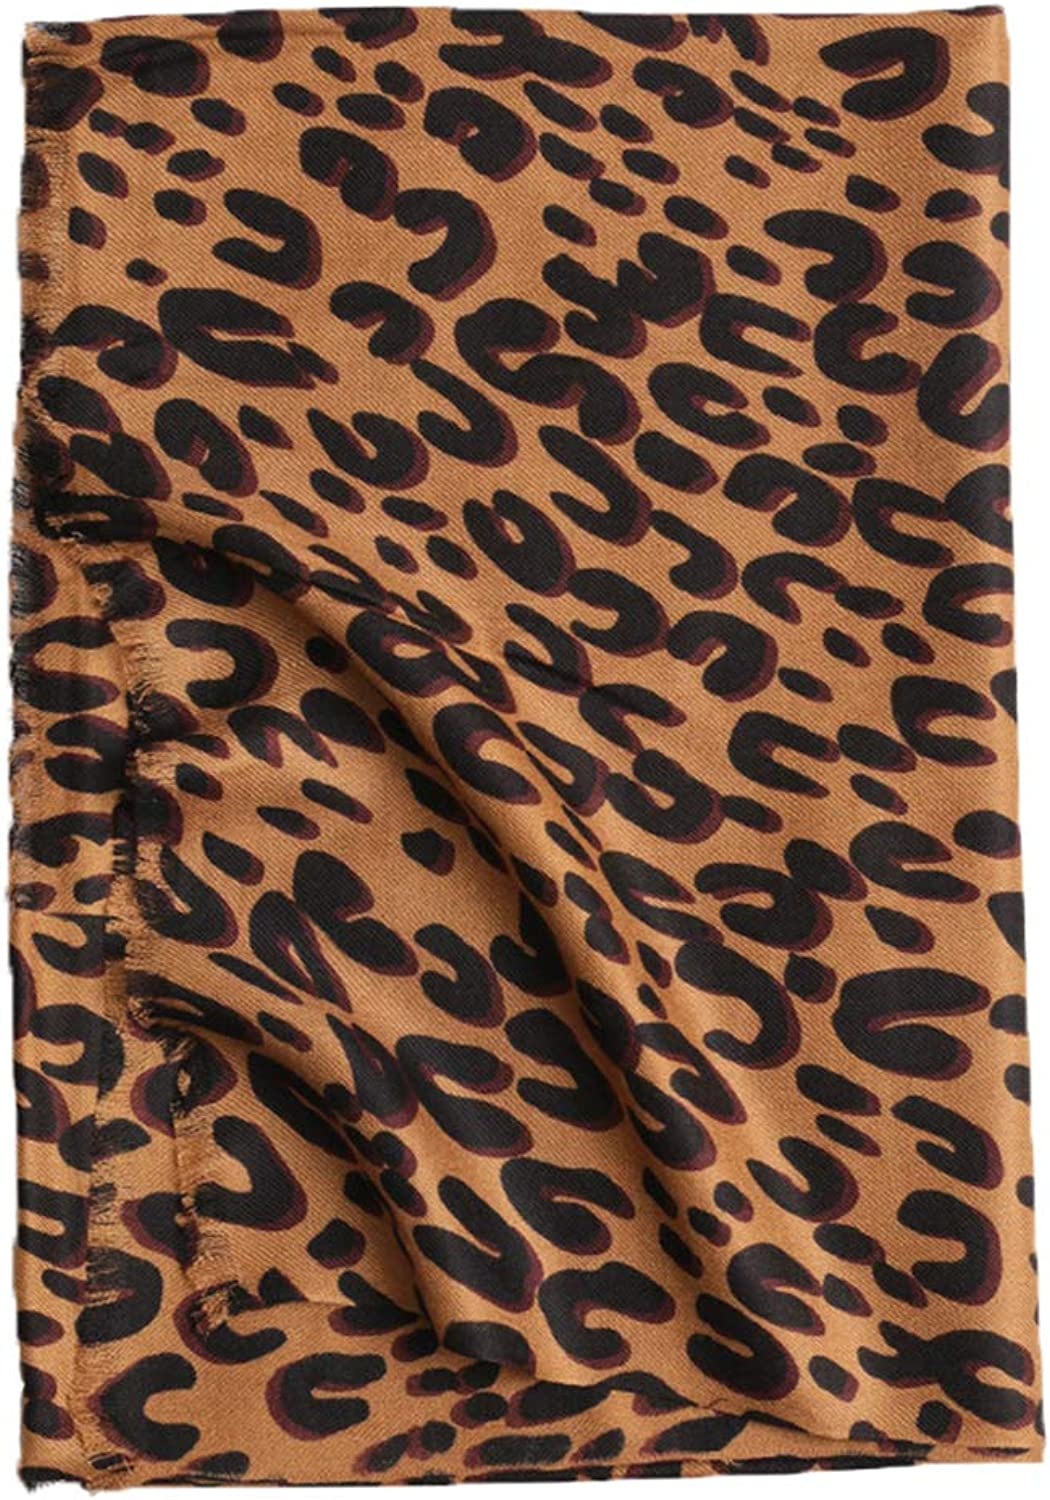 Scarf, Leopard Print Craft Warm Scarf Shawl Dualuse, Ladies Winter Warm Warm Scarf 200cm?